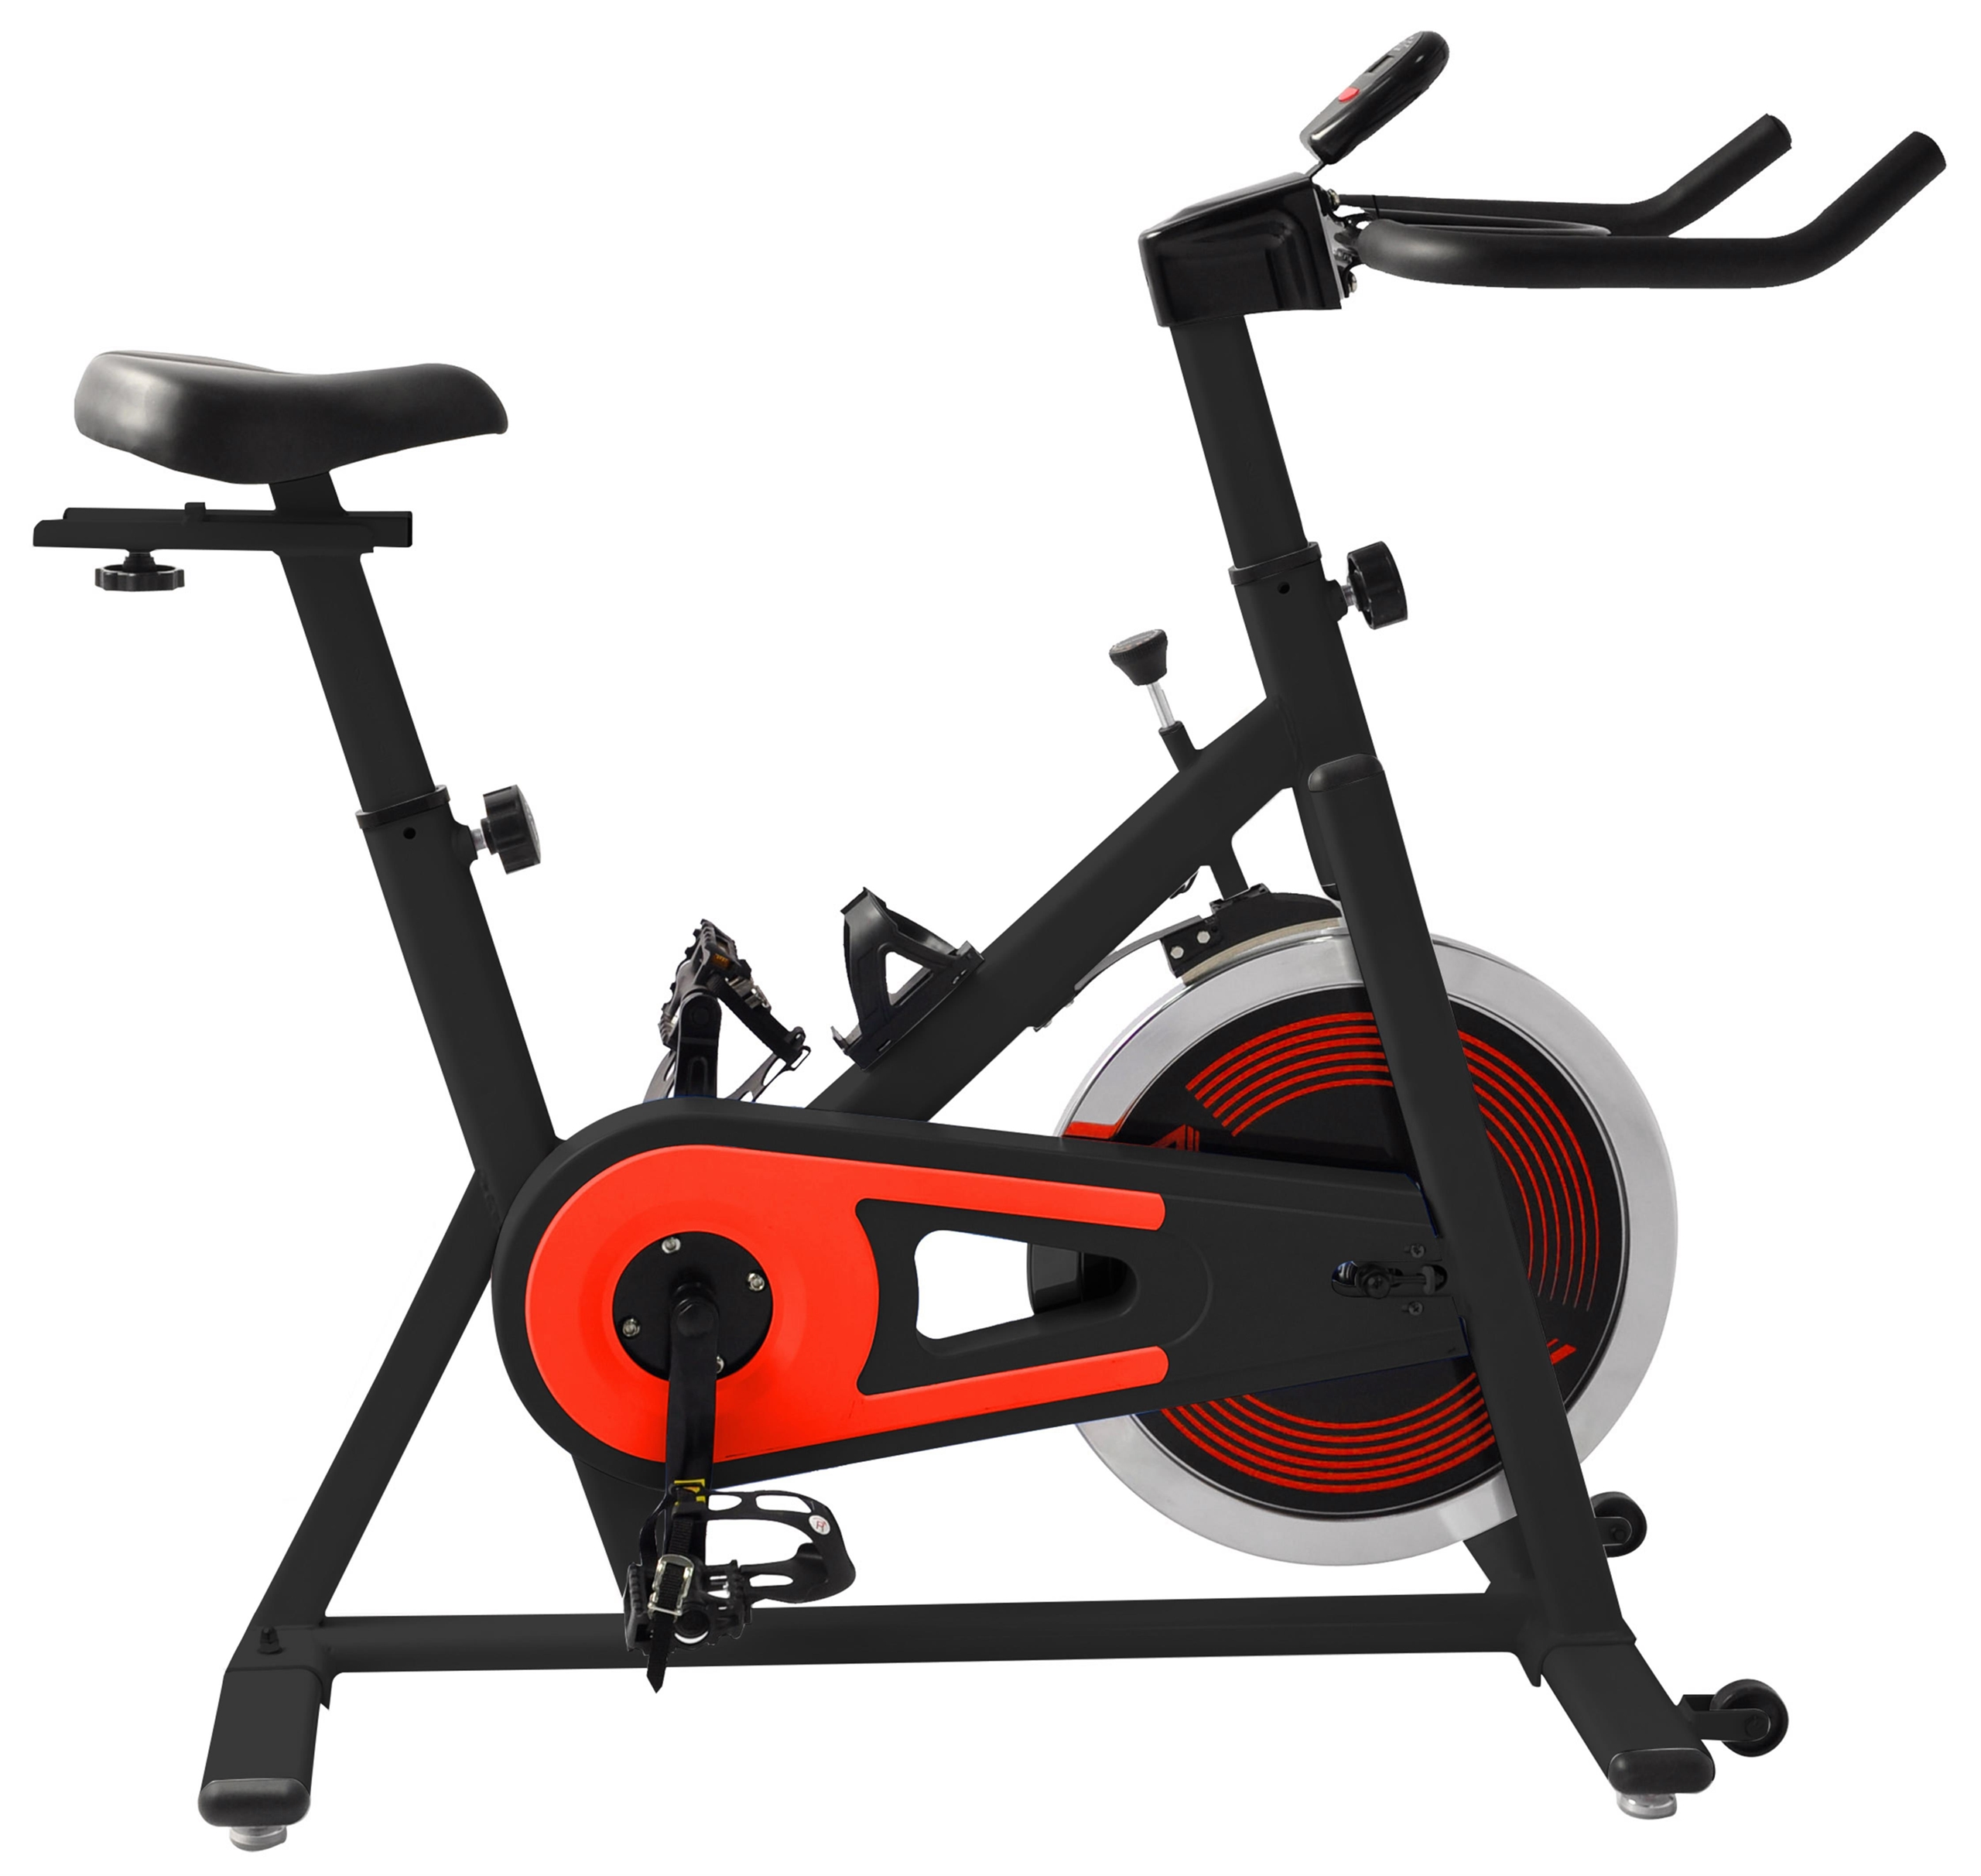 Bicicleta De Spinnig Techfit Speed Evo 310